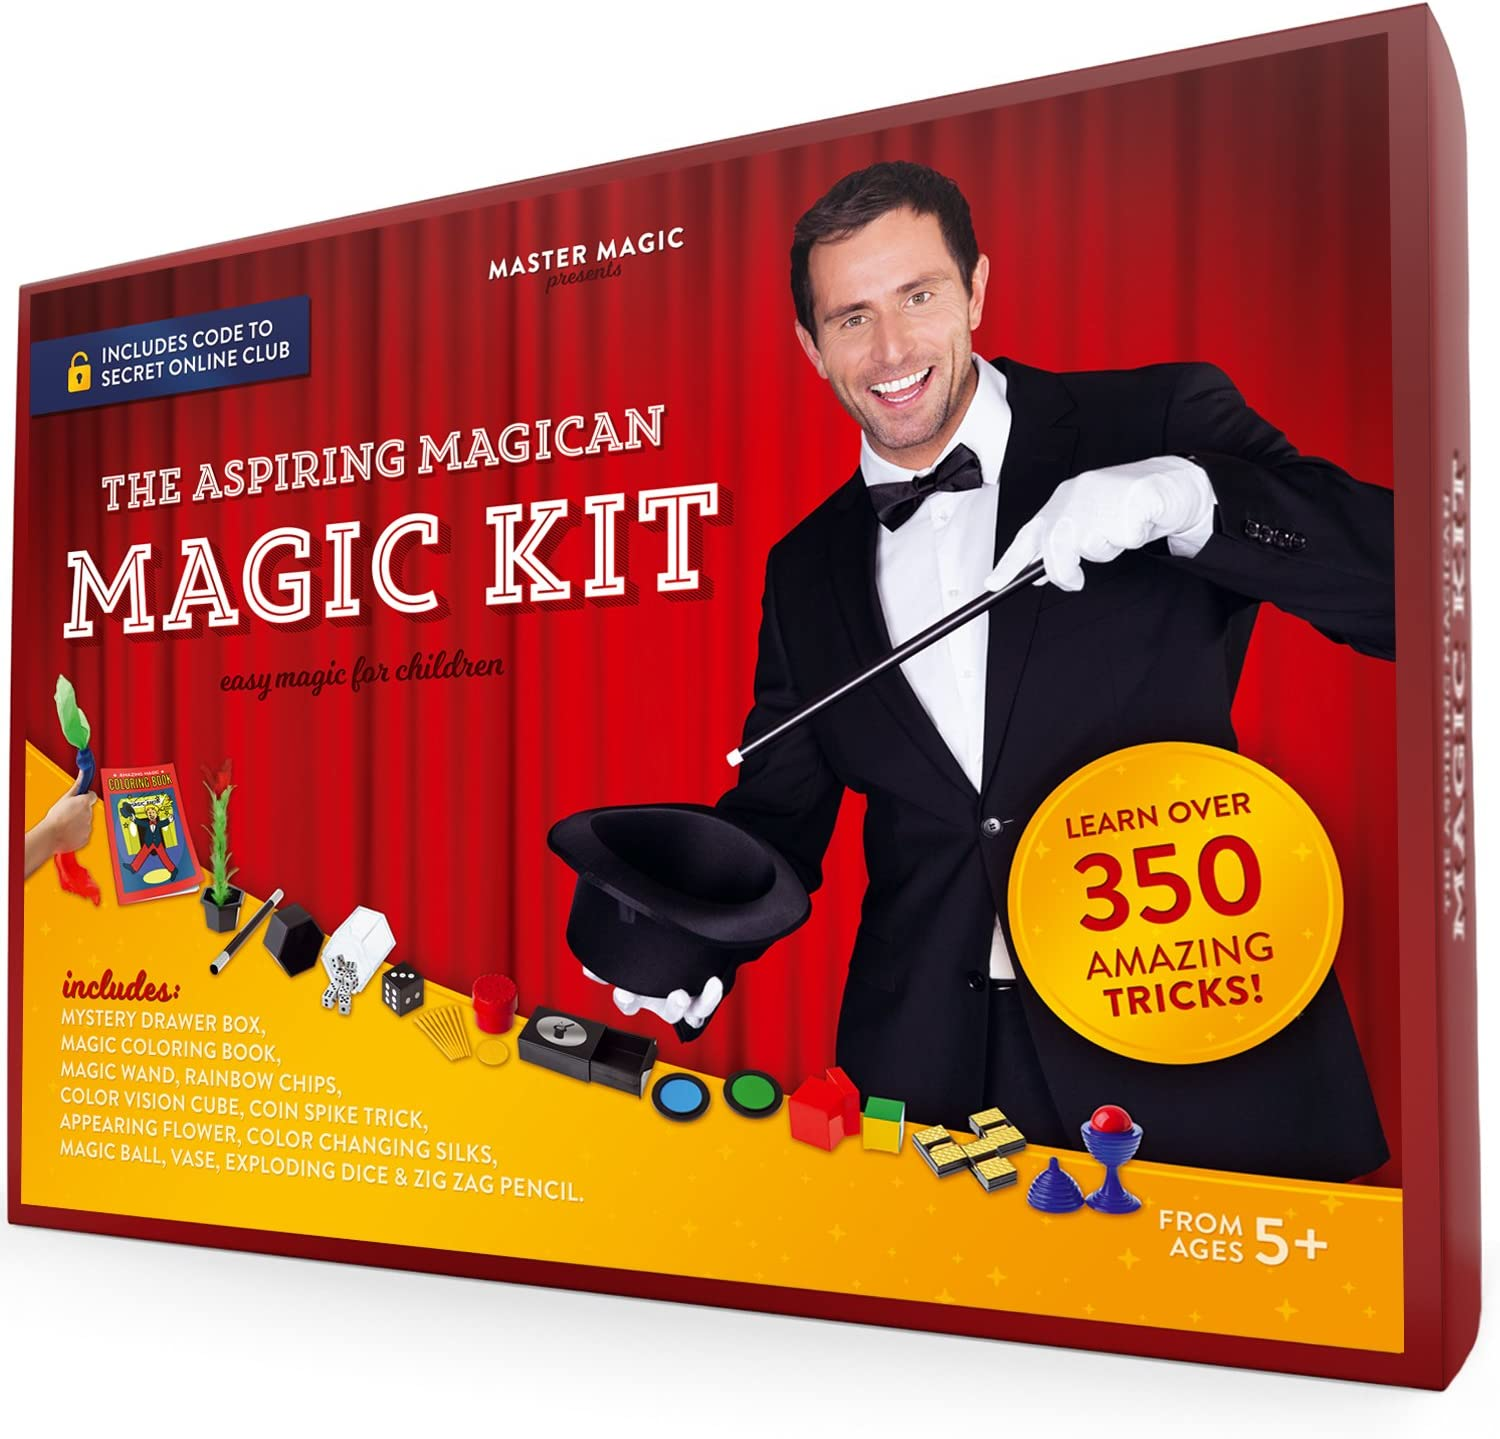 Top 10 Best Magic Kit for Kids (2020 Reviews & Buying Guide) 8